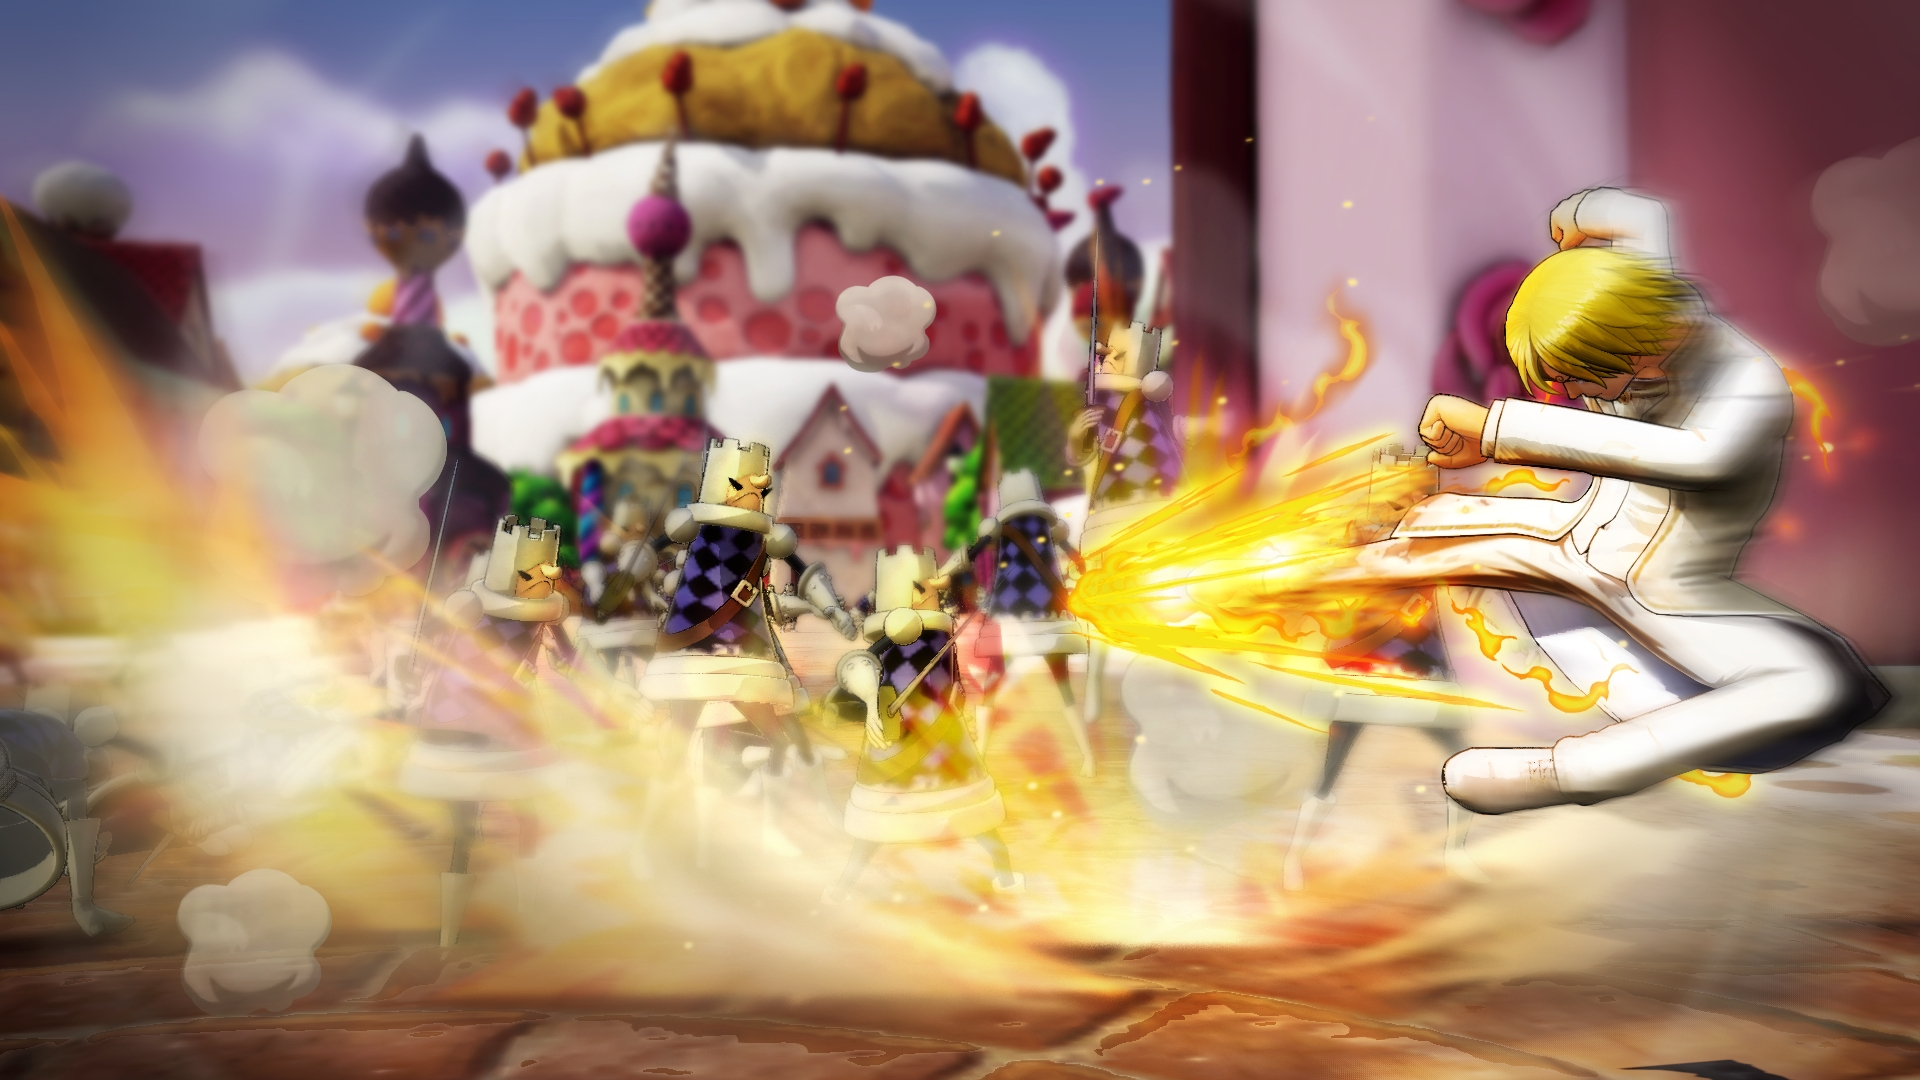 One Piece: Pirate Warriors 4 looks delicious